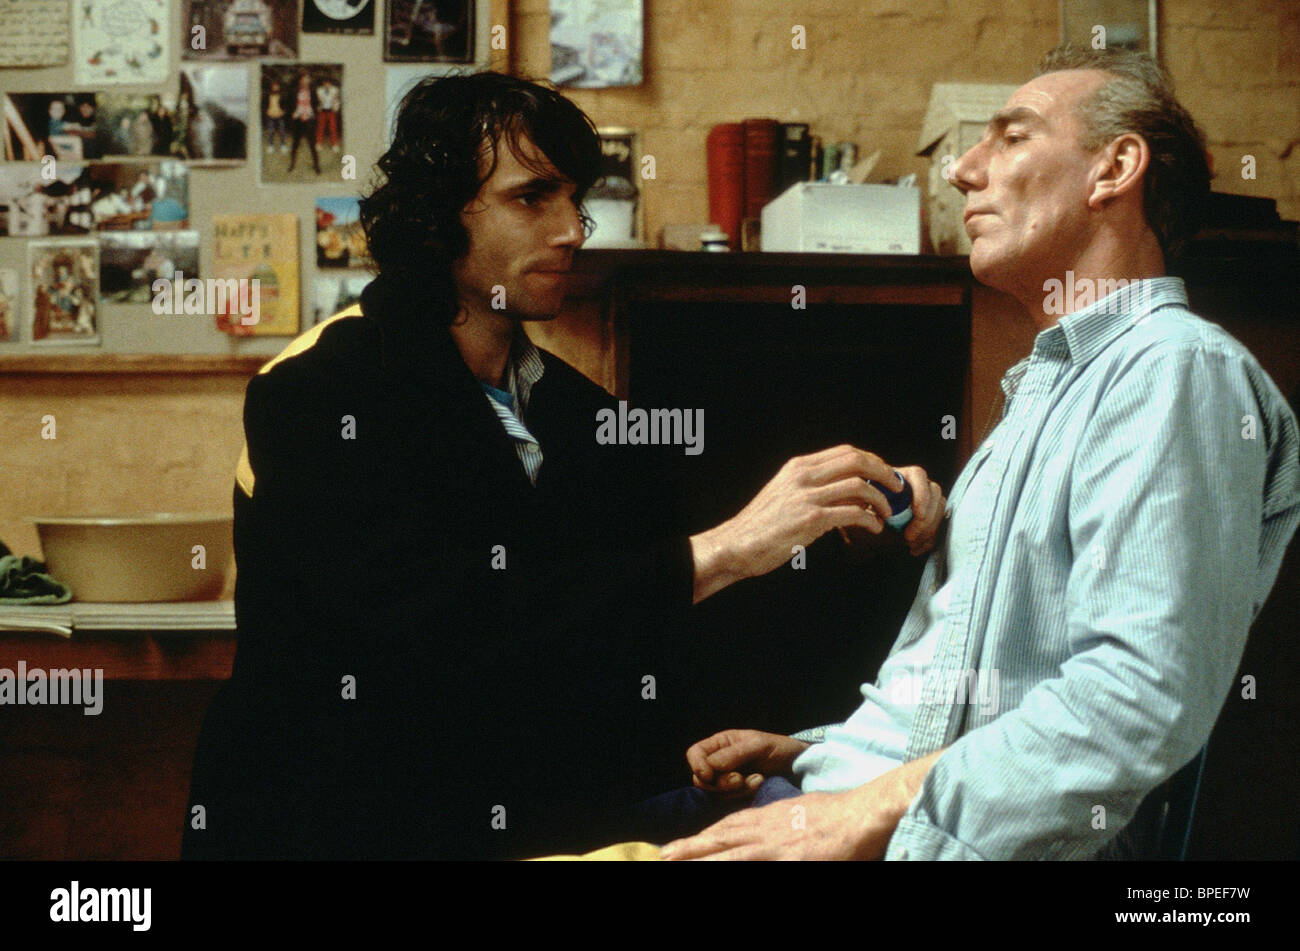 Pete Postlethwaite Stock Photos & Pete Postlethwaite Stock